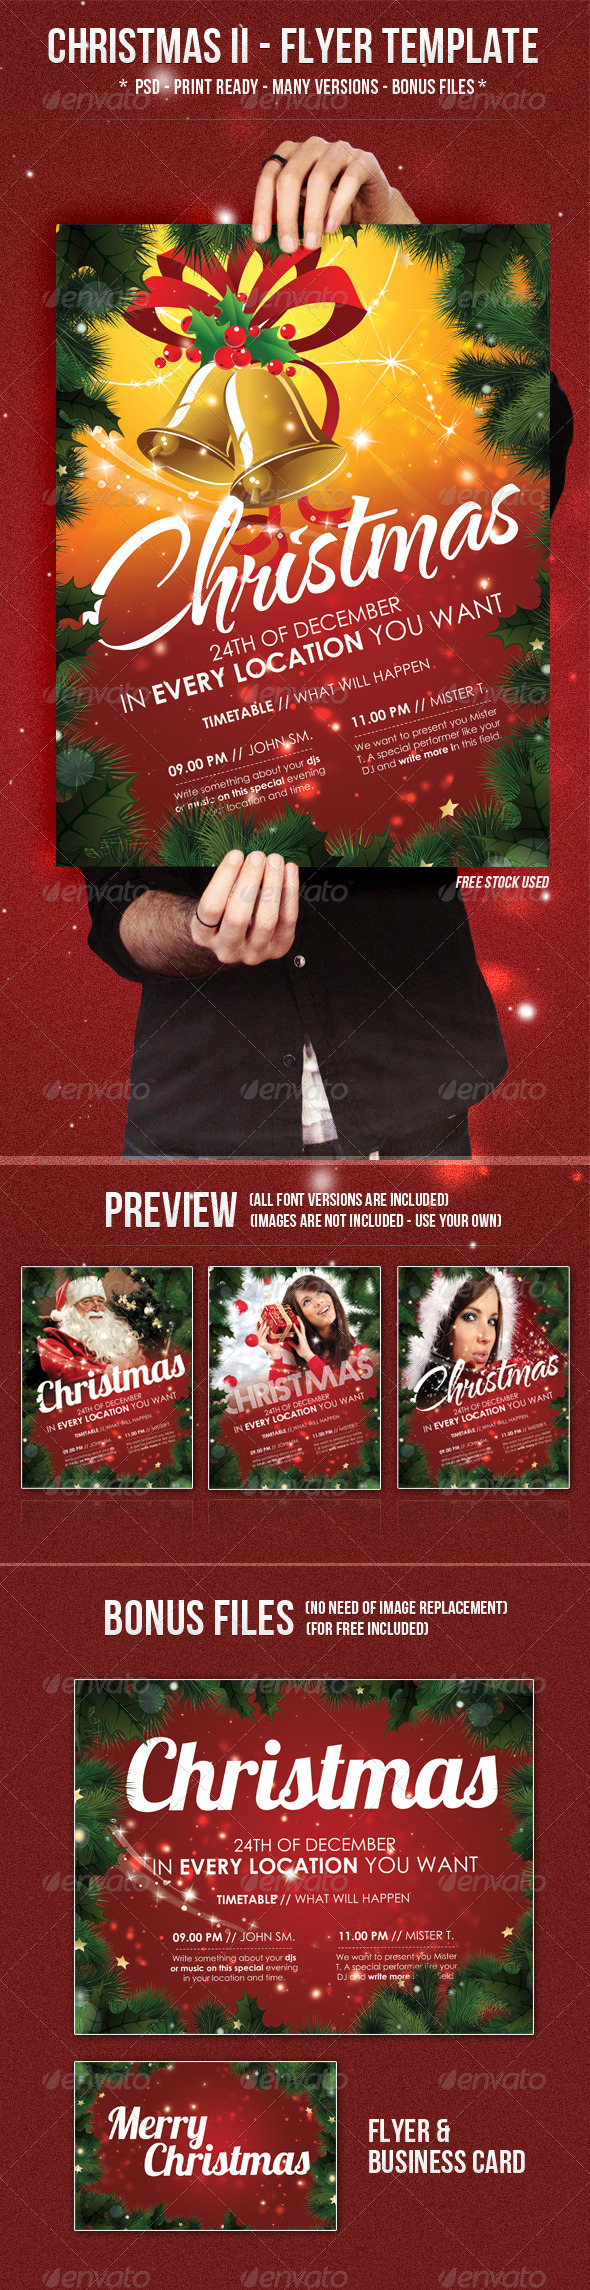 Christmas II - Flyer Template - Clubs & Parties Events